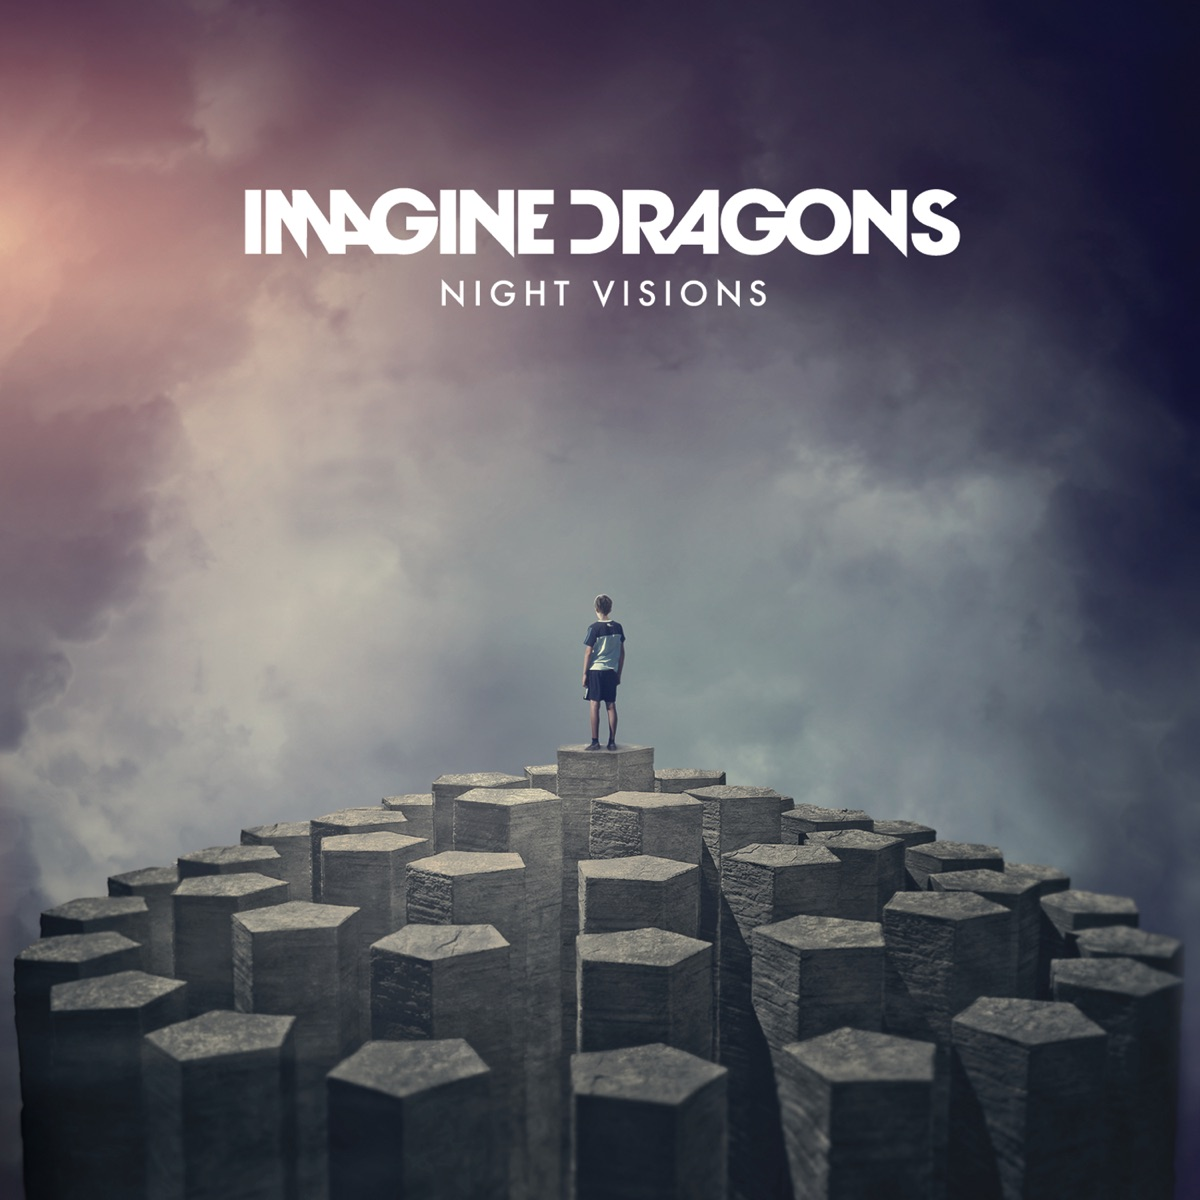 Night Visions Deluxe Version Imagine Dragons CD cover